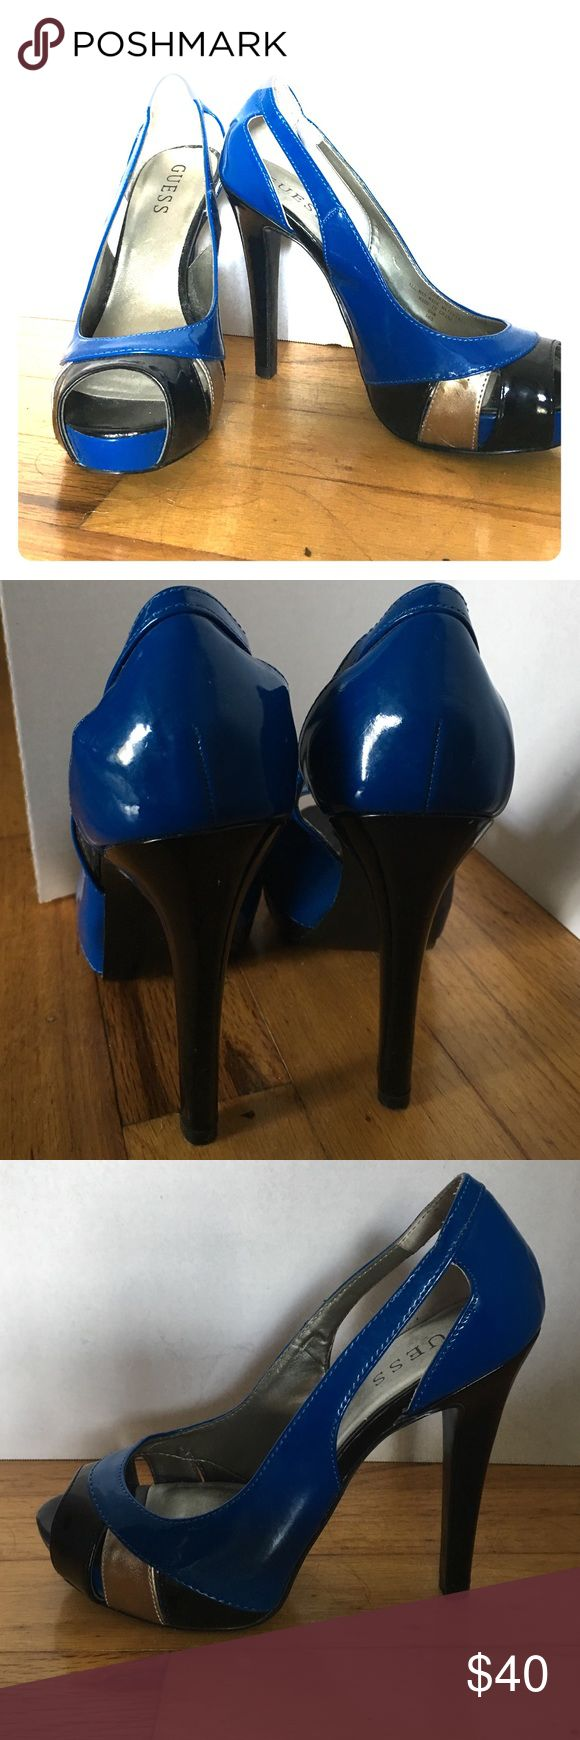 GUESS Blue/ Silver/ Black Stiletto Heels Cute and chic stiletto heels by GUESS. They are perfect for parties, weddings, dinners, and dances! They give you just the right amount of height so you aren't wobbling because you can't balance yourself. Like new condition. Guess Shoes Heels